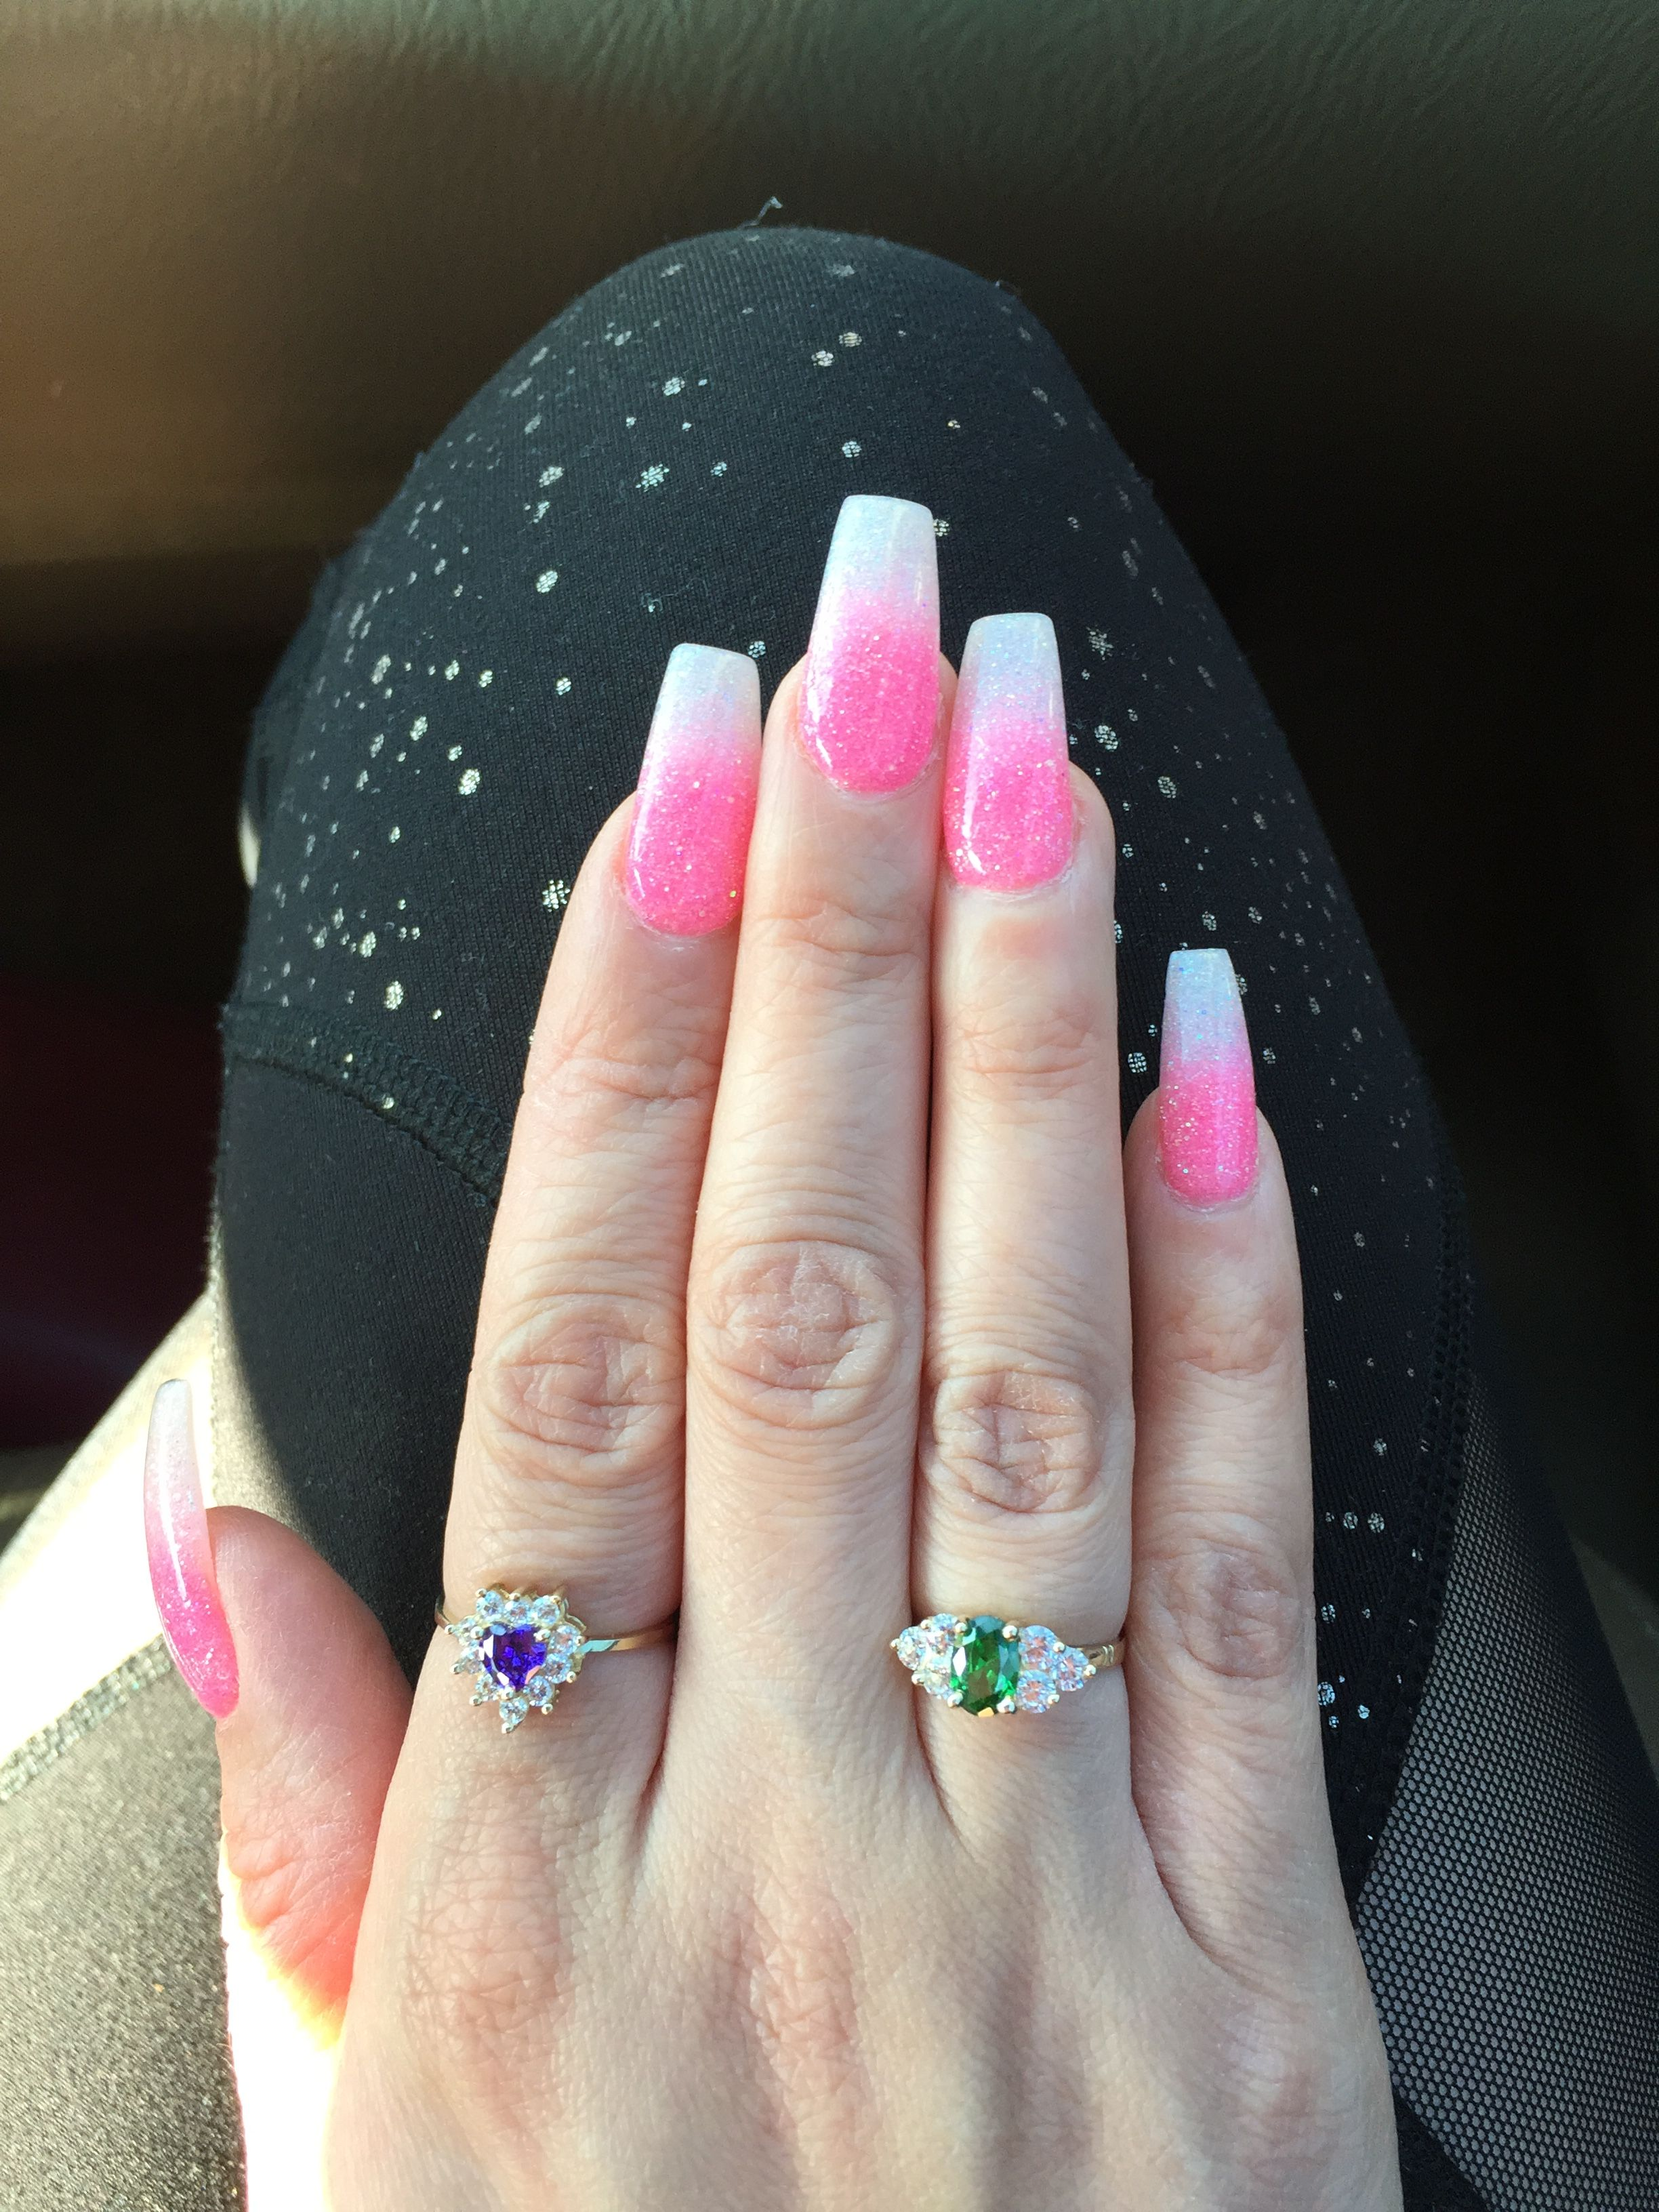 Beautiful Birthday Nails S S Dip Powder Ombre Hot Pink And White Glitter Shout Out To May Luxury Nails Nw Pink Ombre Nails Birthday Nails Pink Nails